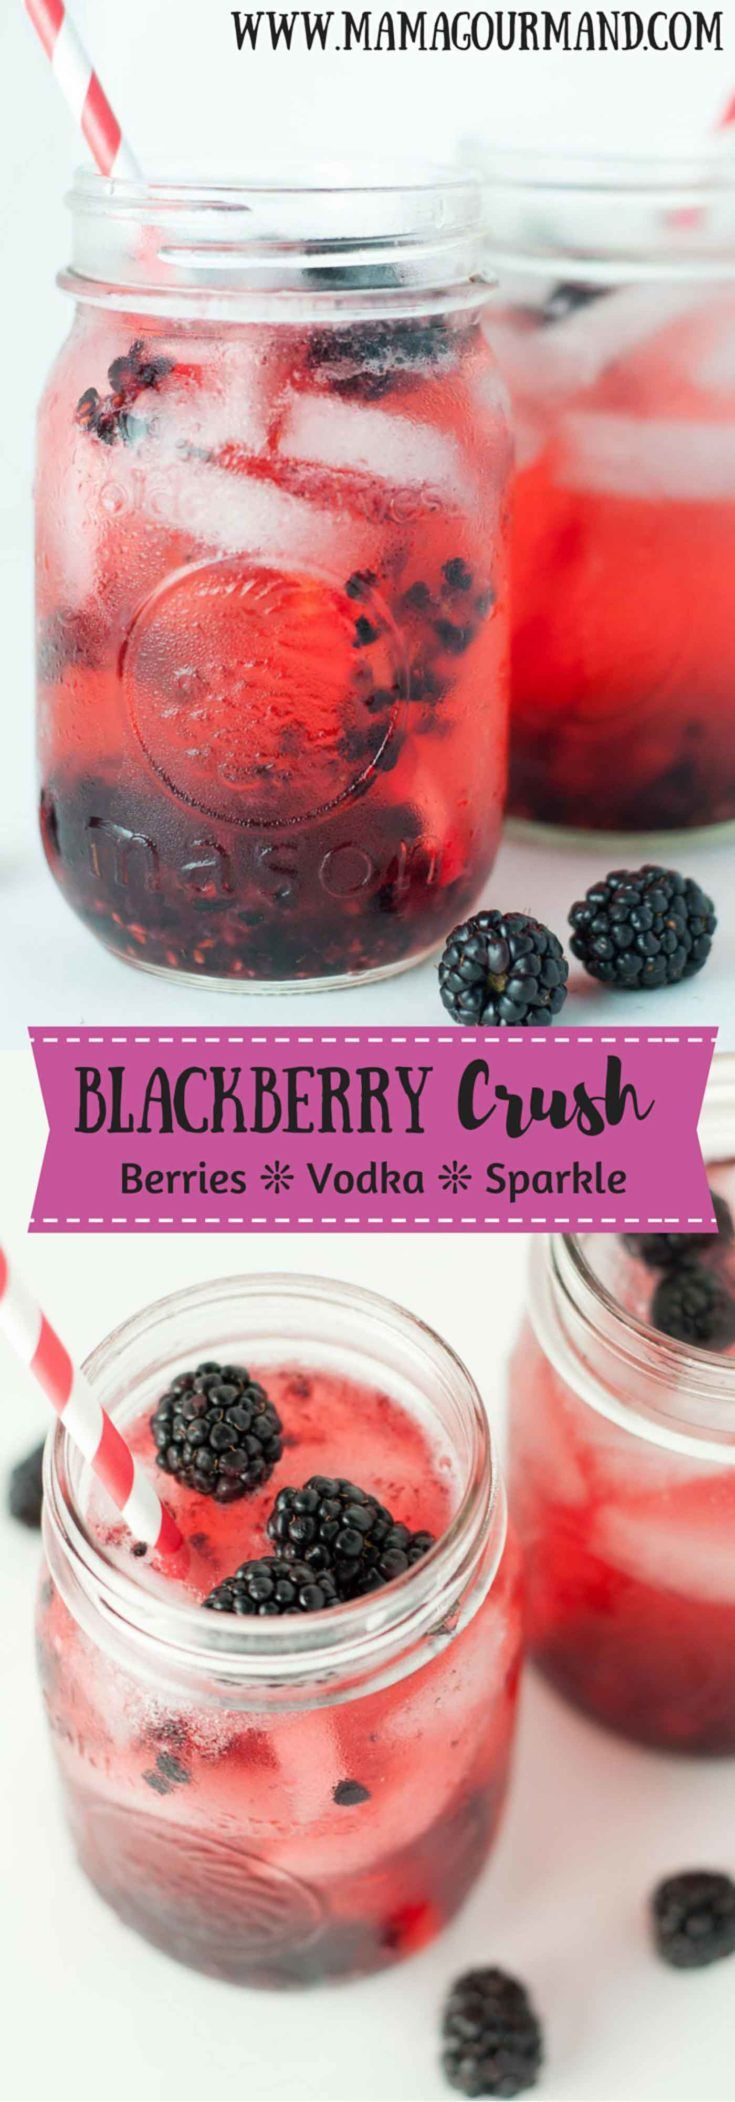 Blackberry Crush cocktail recipe combines vodka and fresh berries in a sparkling…